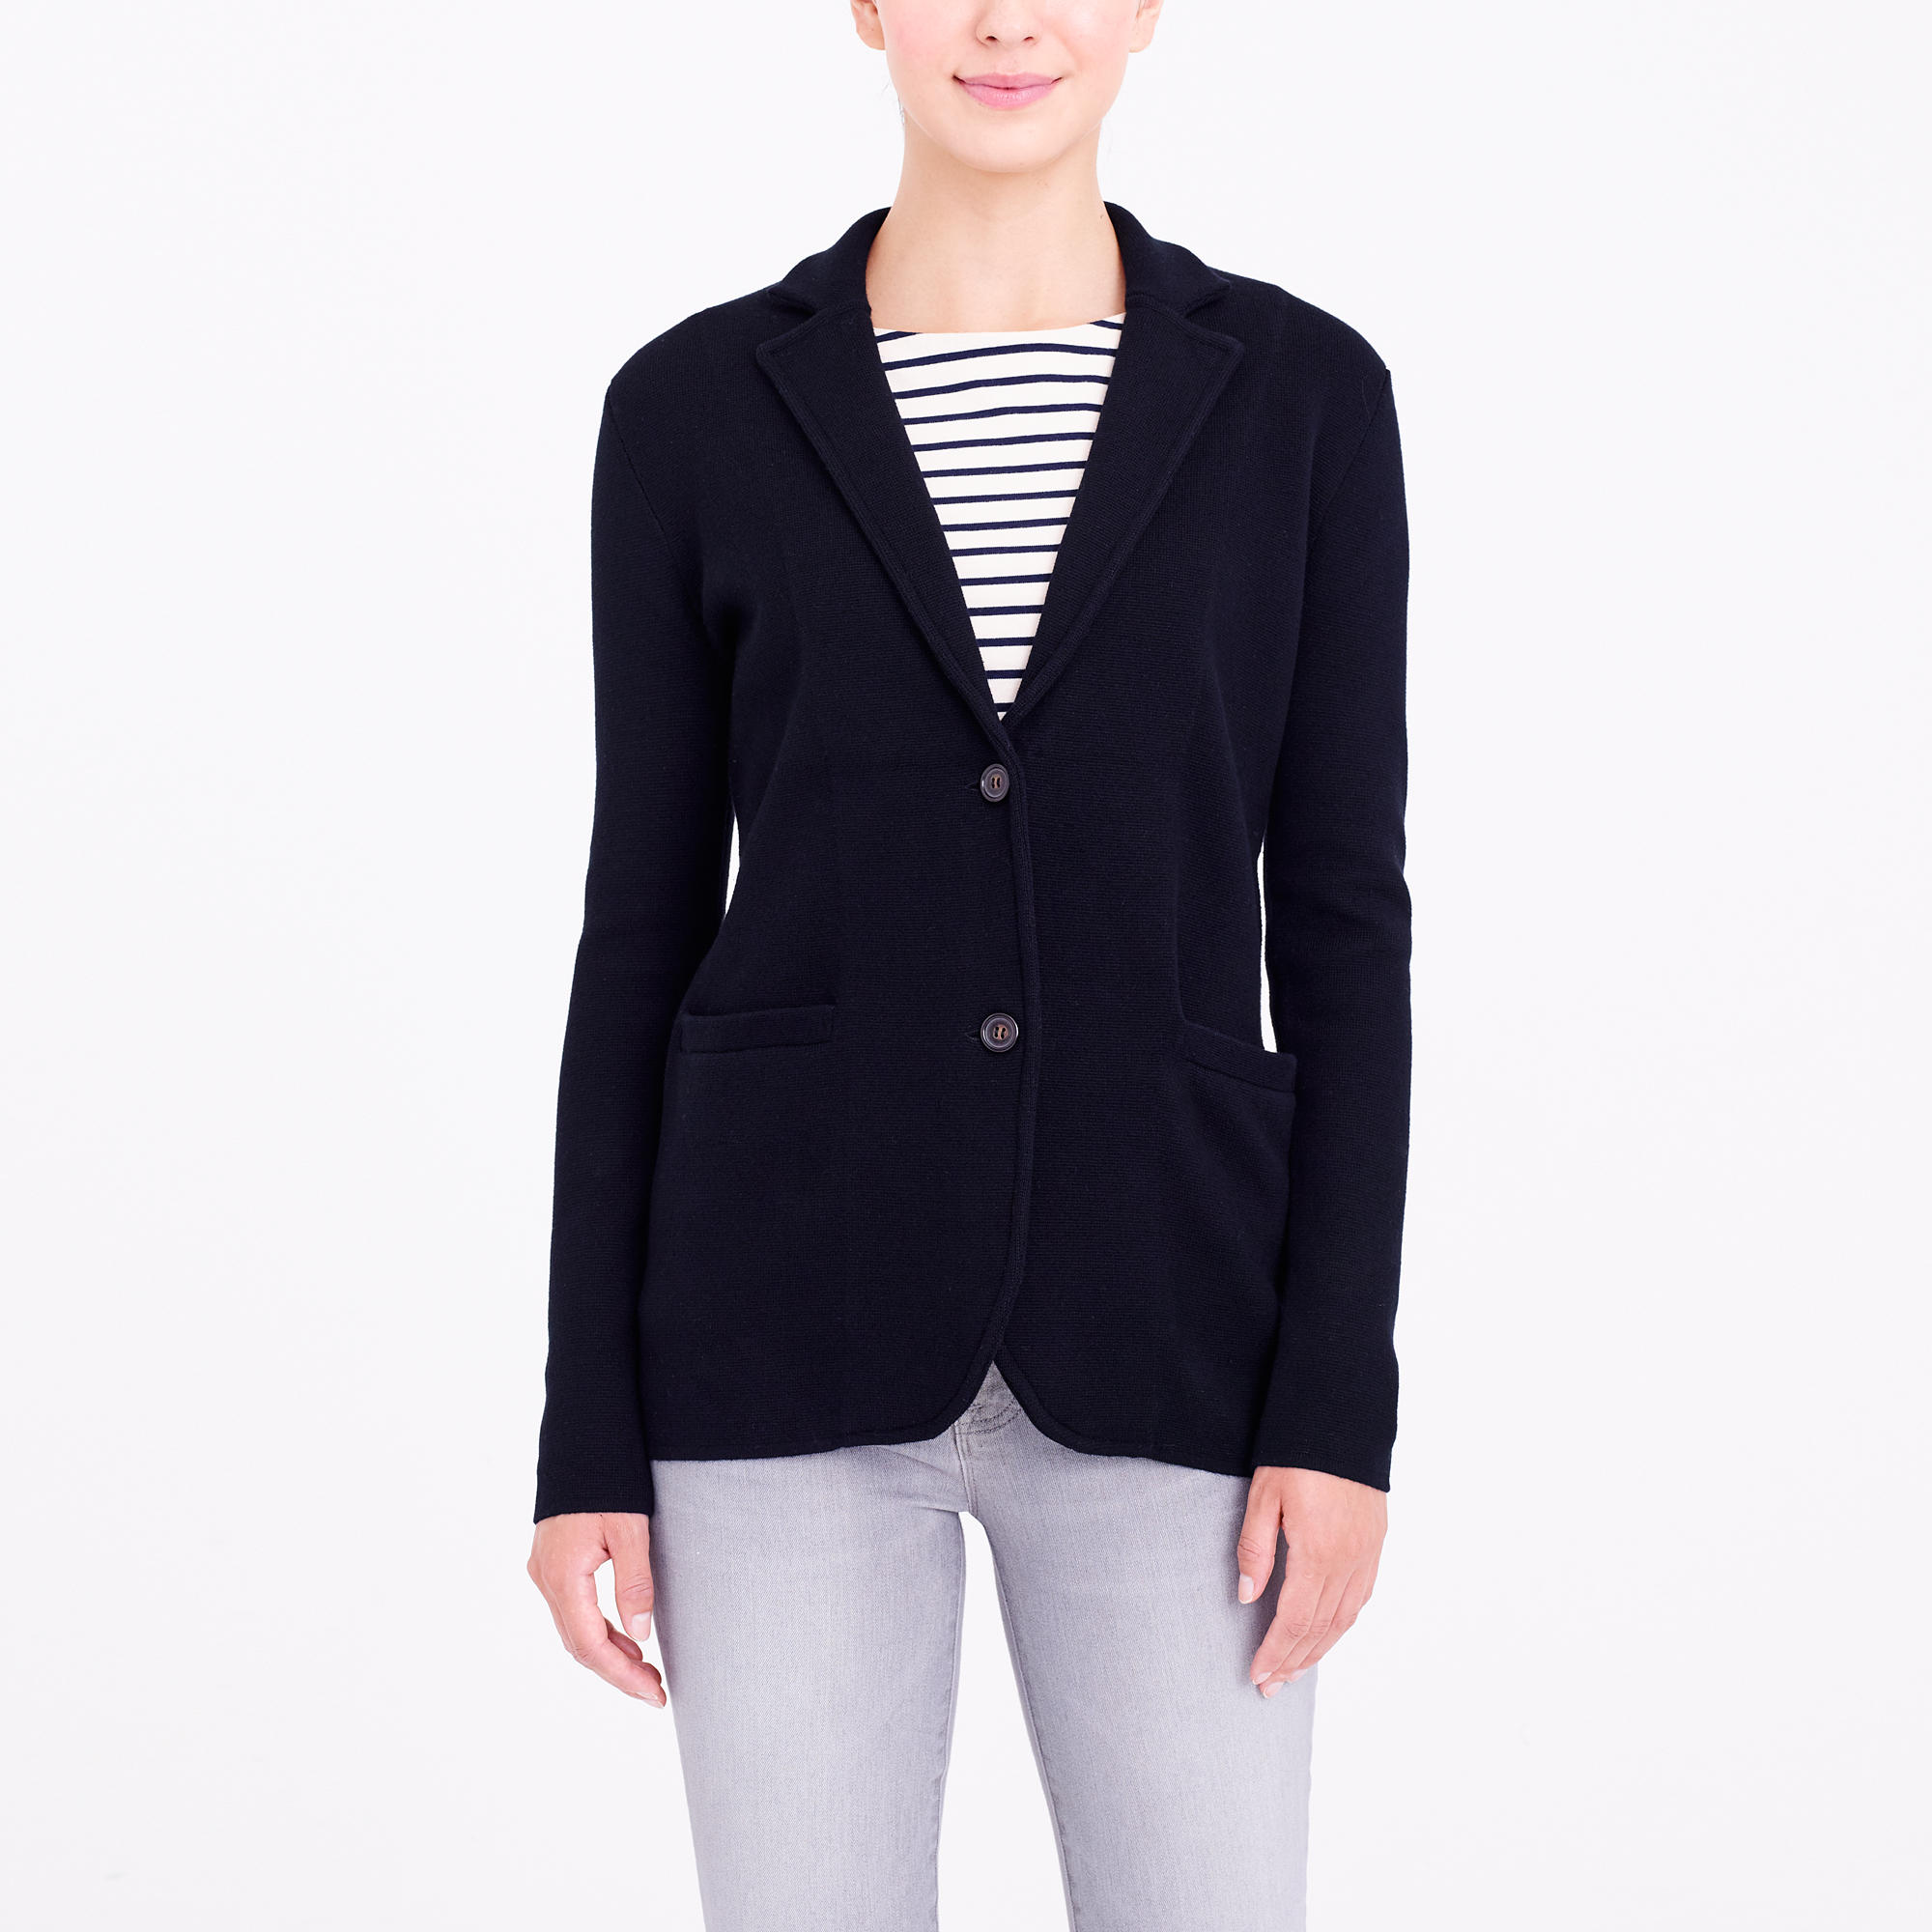 Clare Cardigan Sweater : Women's Sweaters | J.Crew Factory